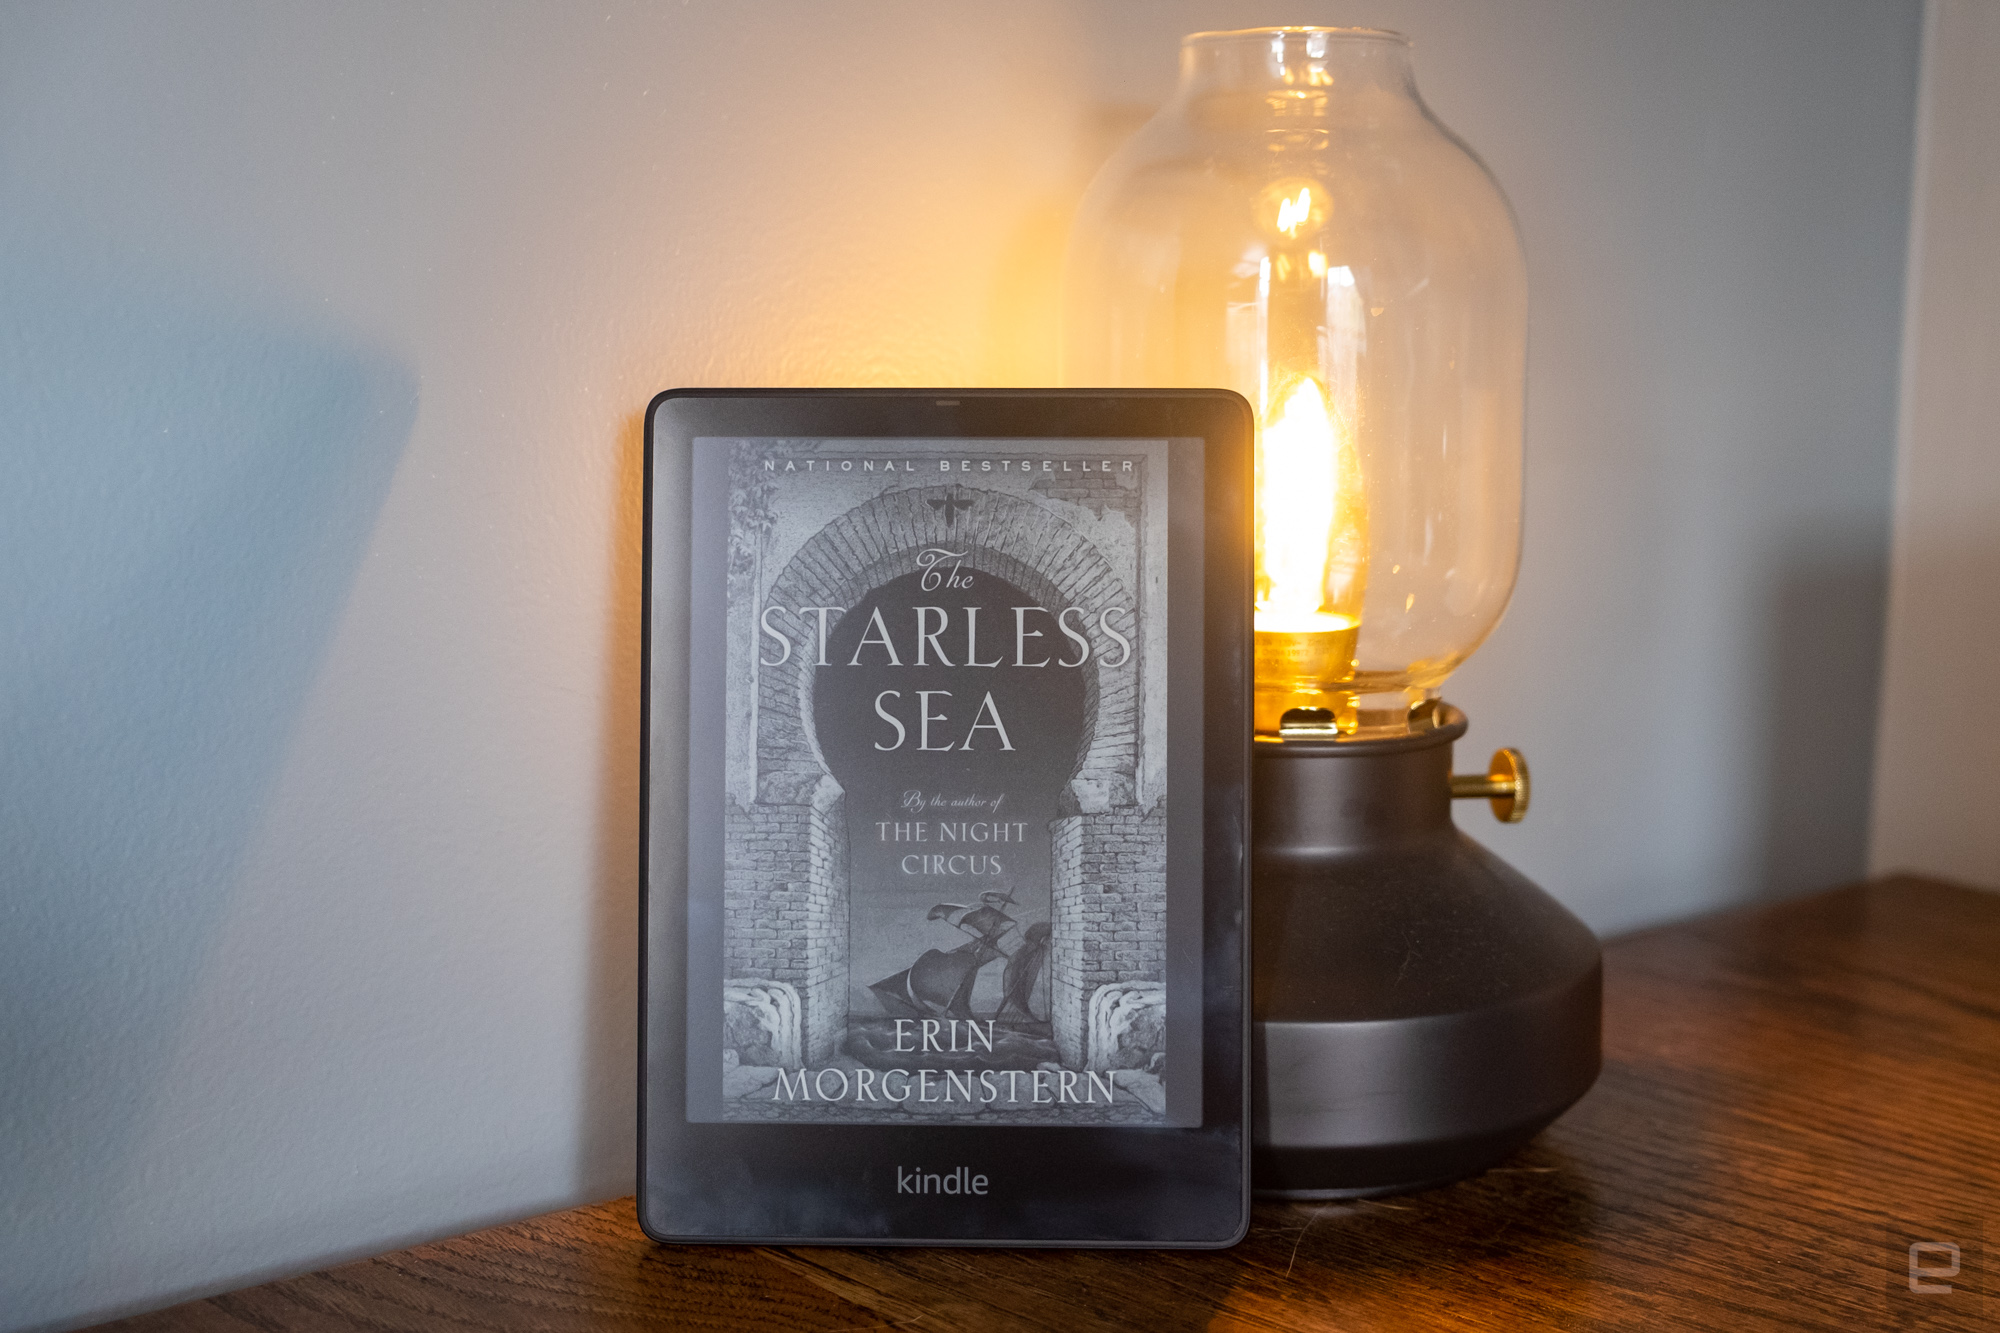 Amazon's latest Kindle Paperwhite e-reader, which was released at the end of October 2021.